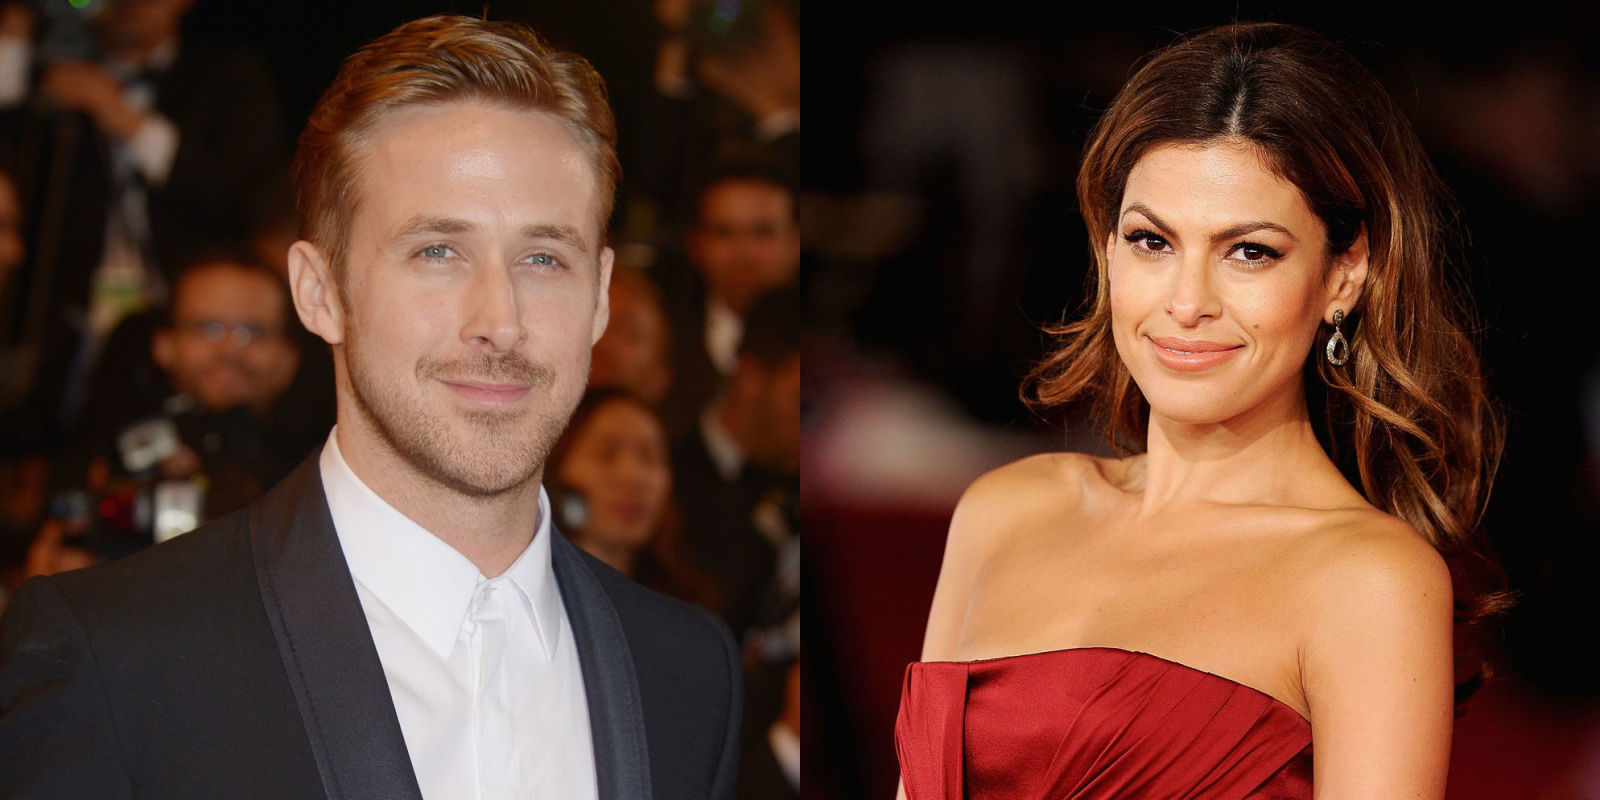 This Is Why You Never See Eva Mendes on the Red Carpet with Ryan Gosling